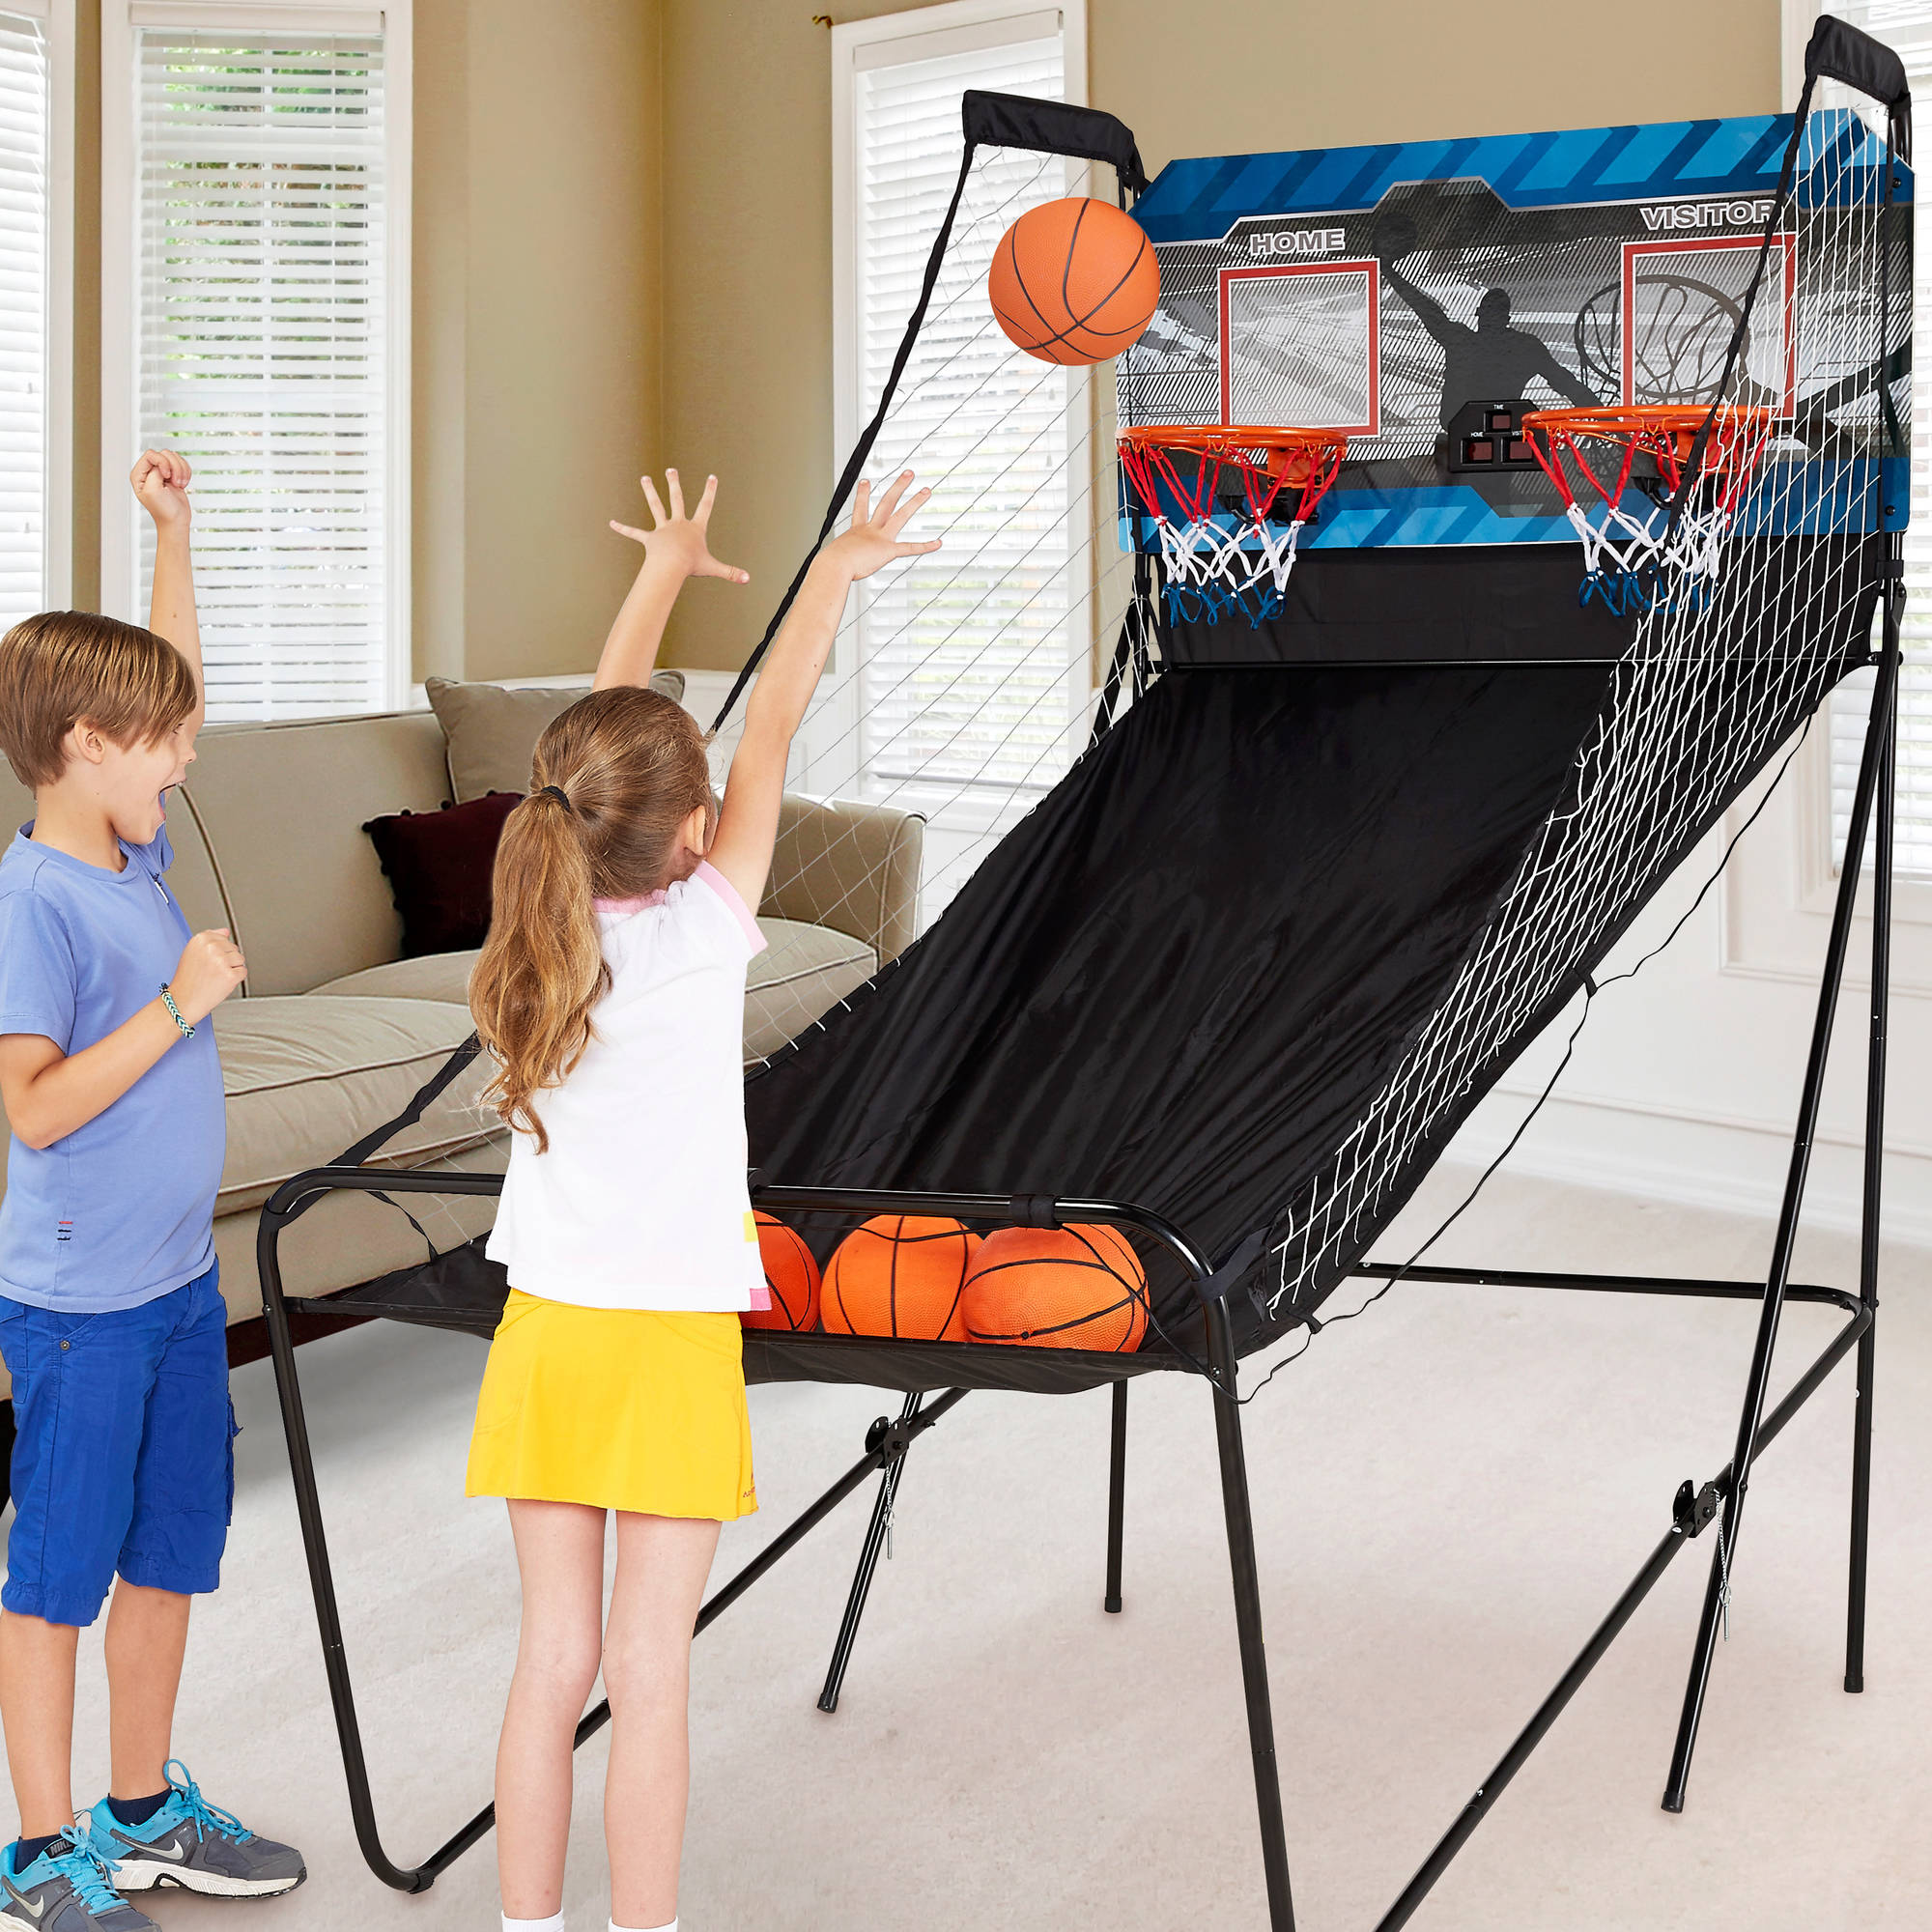 MD Sports 2-Player Arcade Basketball Game with 8-in-1 Game